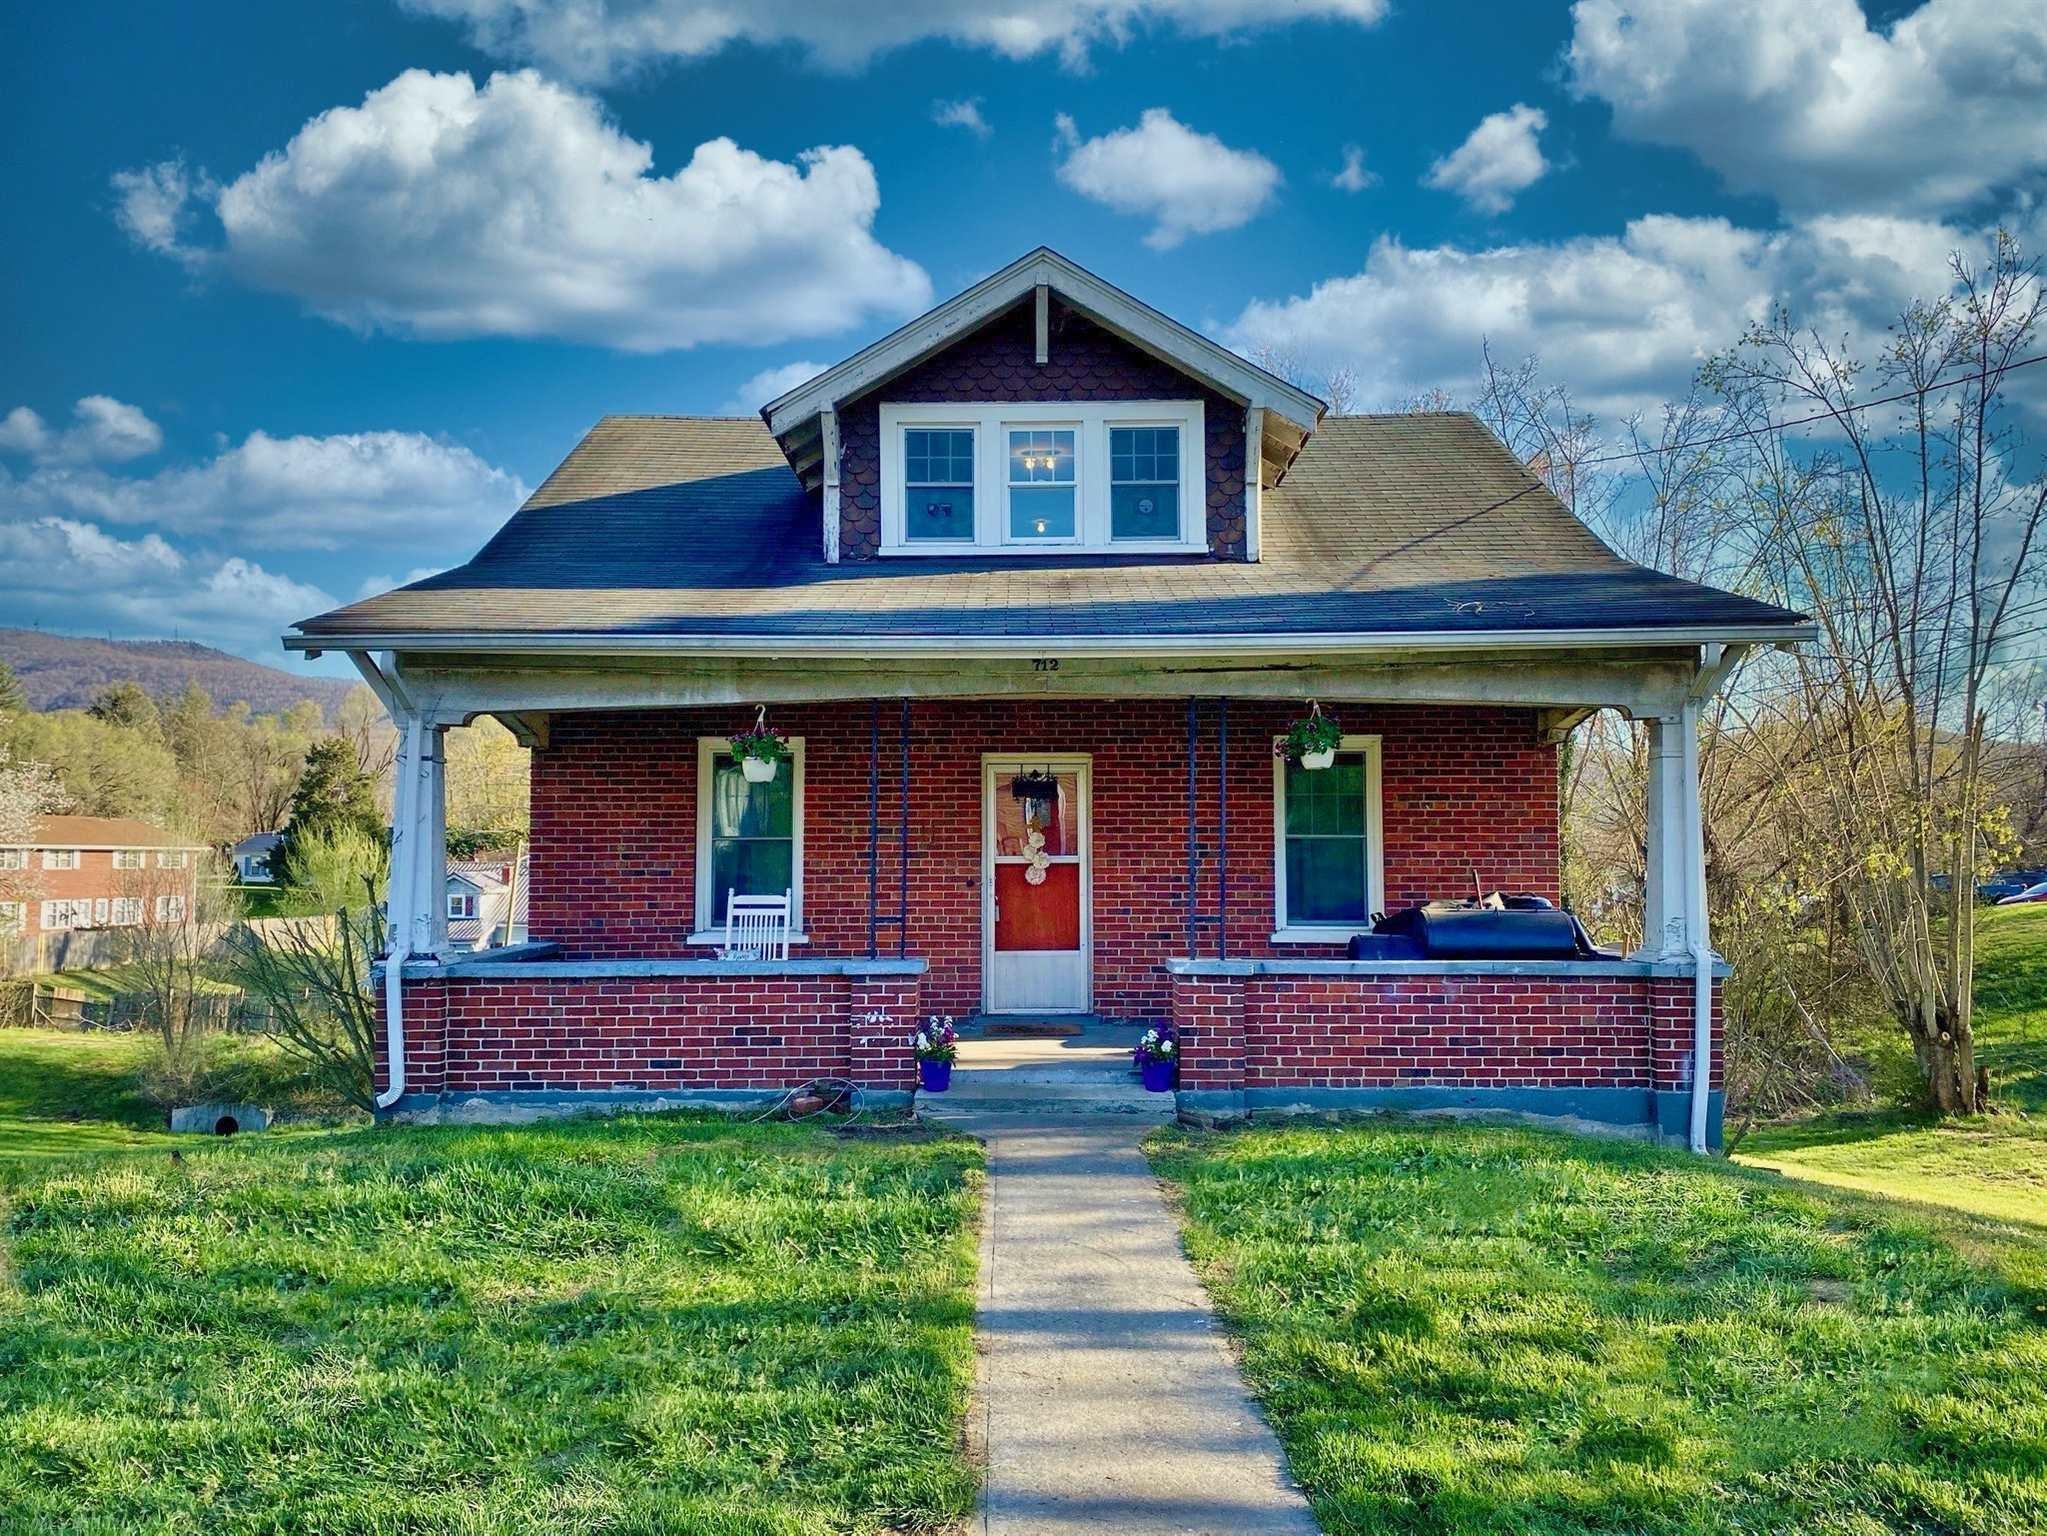 What a great starter home and great value. This home is well built  with great bones and lots of character! Lounge on the great front porch in the evenings. Within walking distance of restaurants. Hardwood floors. This home needs a little TLC but the hard part has been done. New Heat pump, and all new Pella windows. In 2008 there was a new gas Furnace, new insulation upstairs in the walls and floor and  new plumbing throughout..2012 there were new shingles, gutter and front porch fascia board, 2017 Mobile dishwasher and in 2018 new hot water heater and water efficient toilet.  So the heavy lifting is done. Now your palate awaits on how to make it yours.